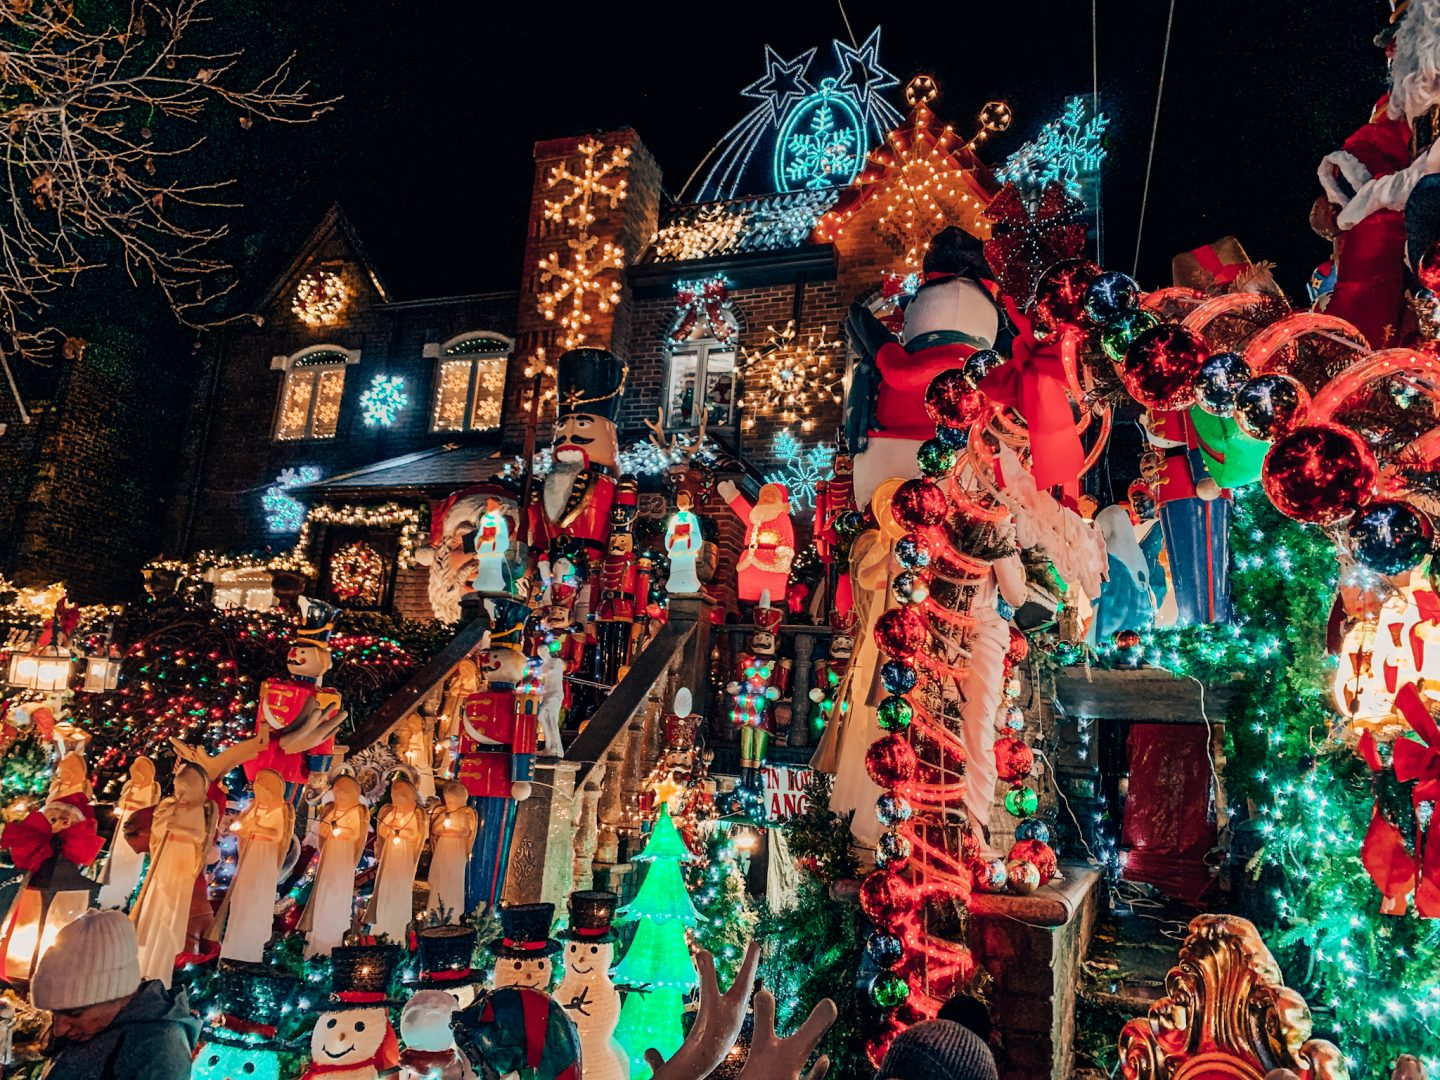 Decorated homes in Dyker Heights, Brooklyn!